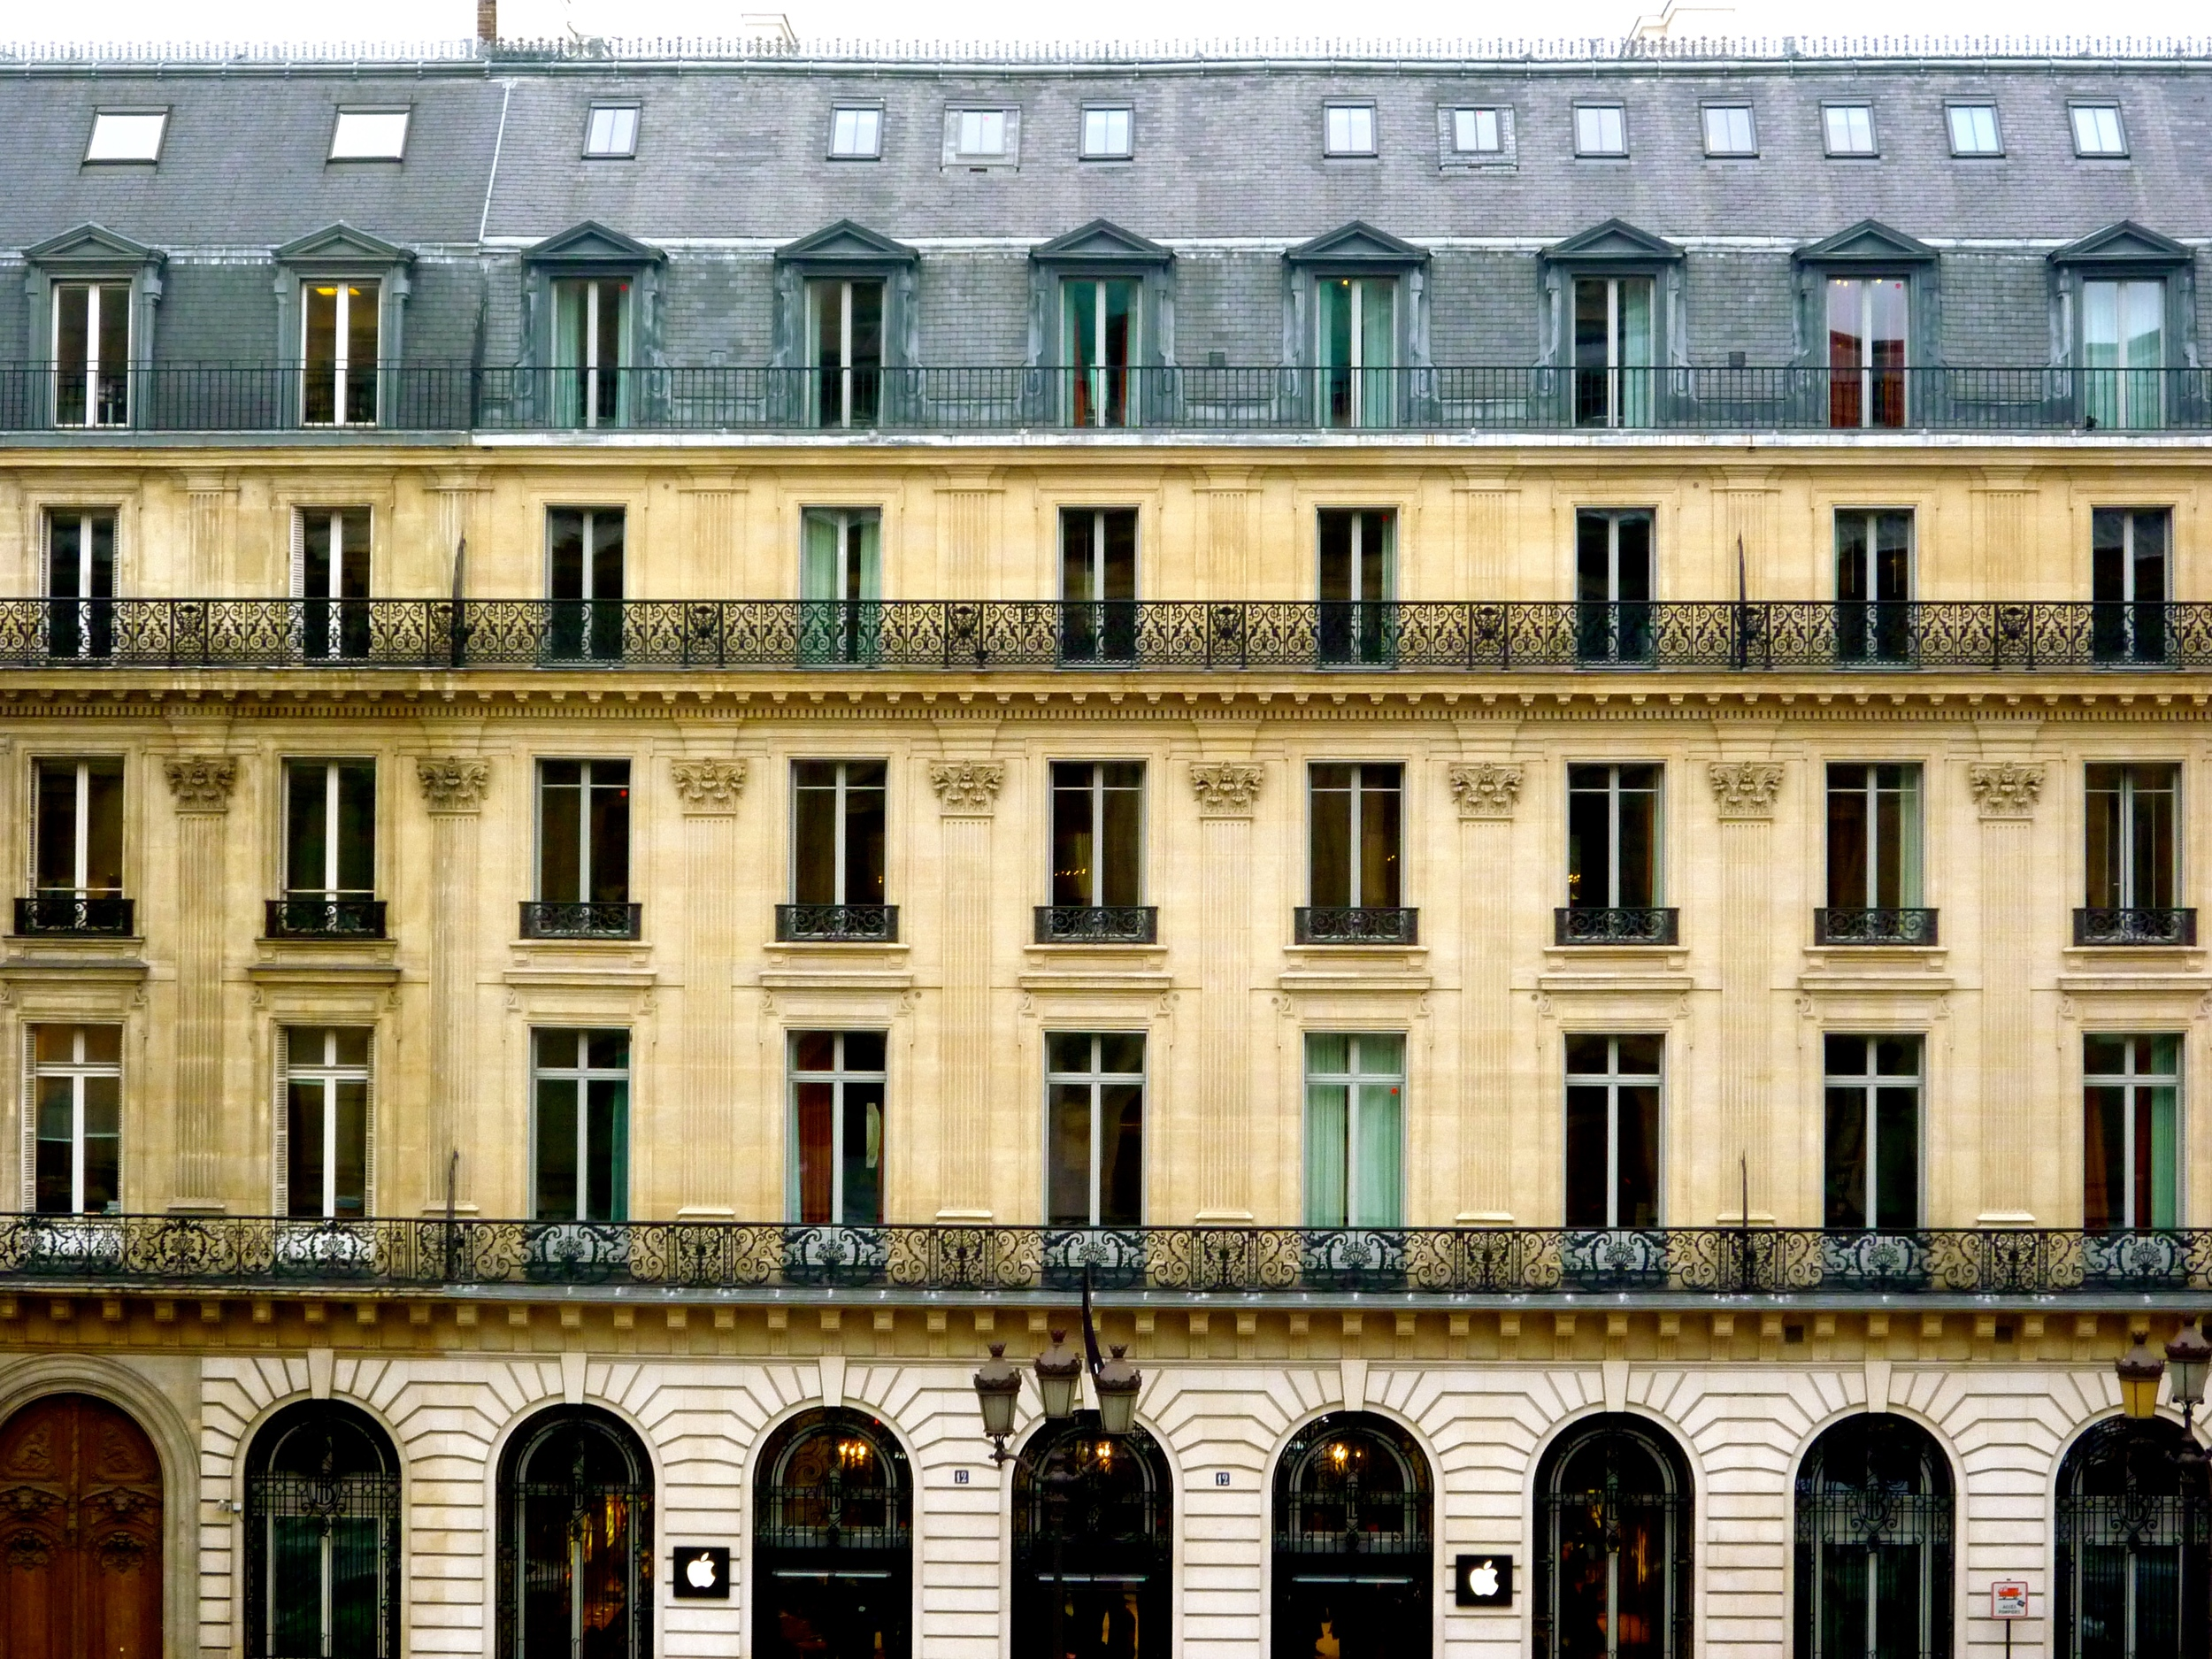 A Haussmann apartment building in Paris